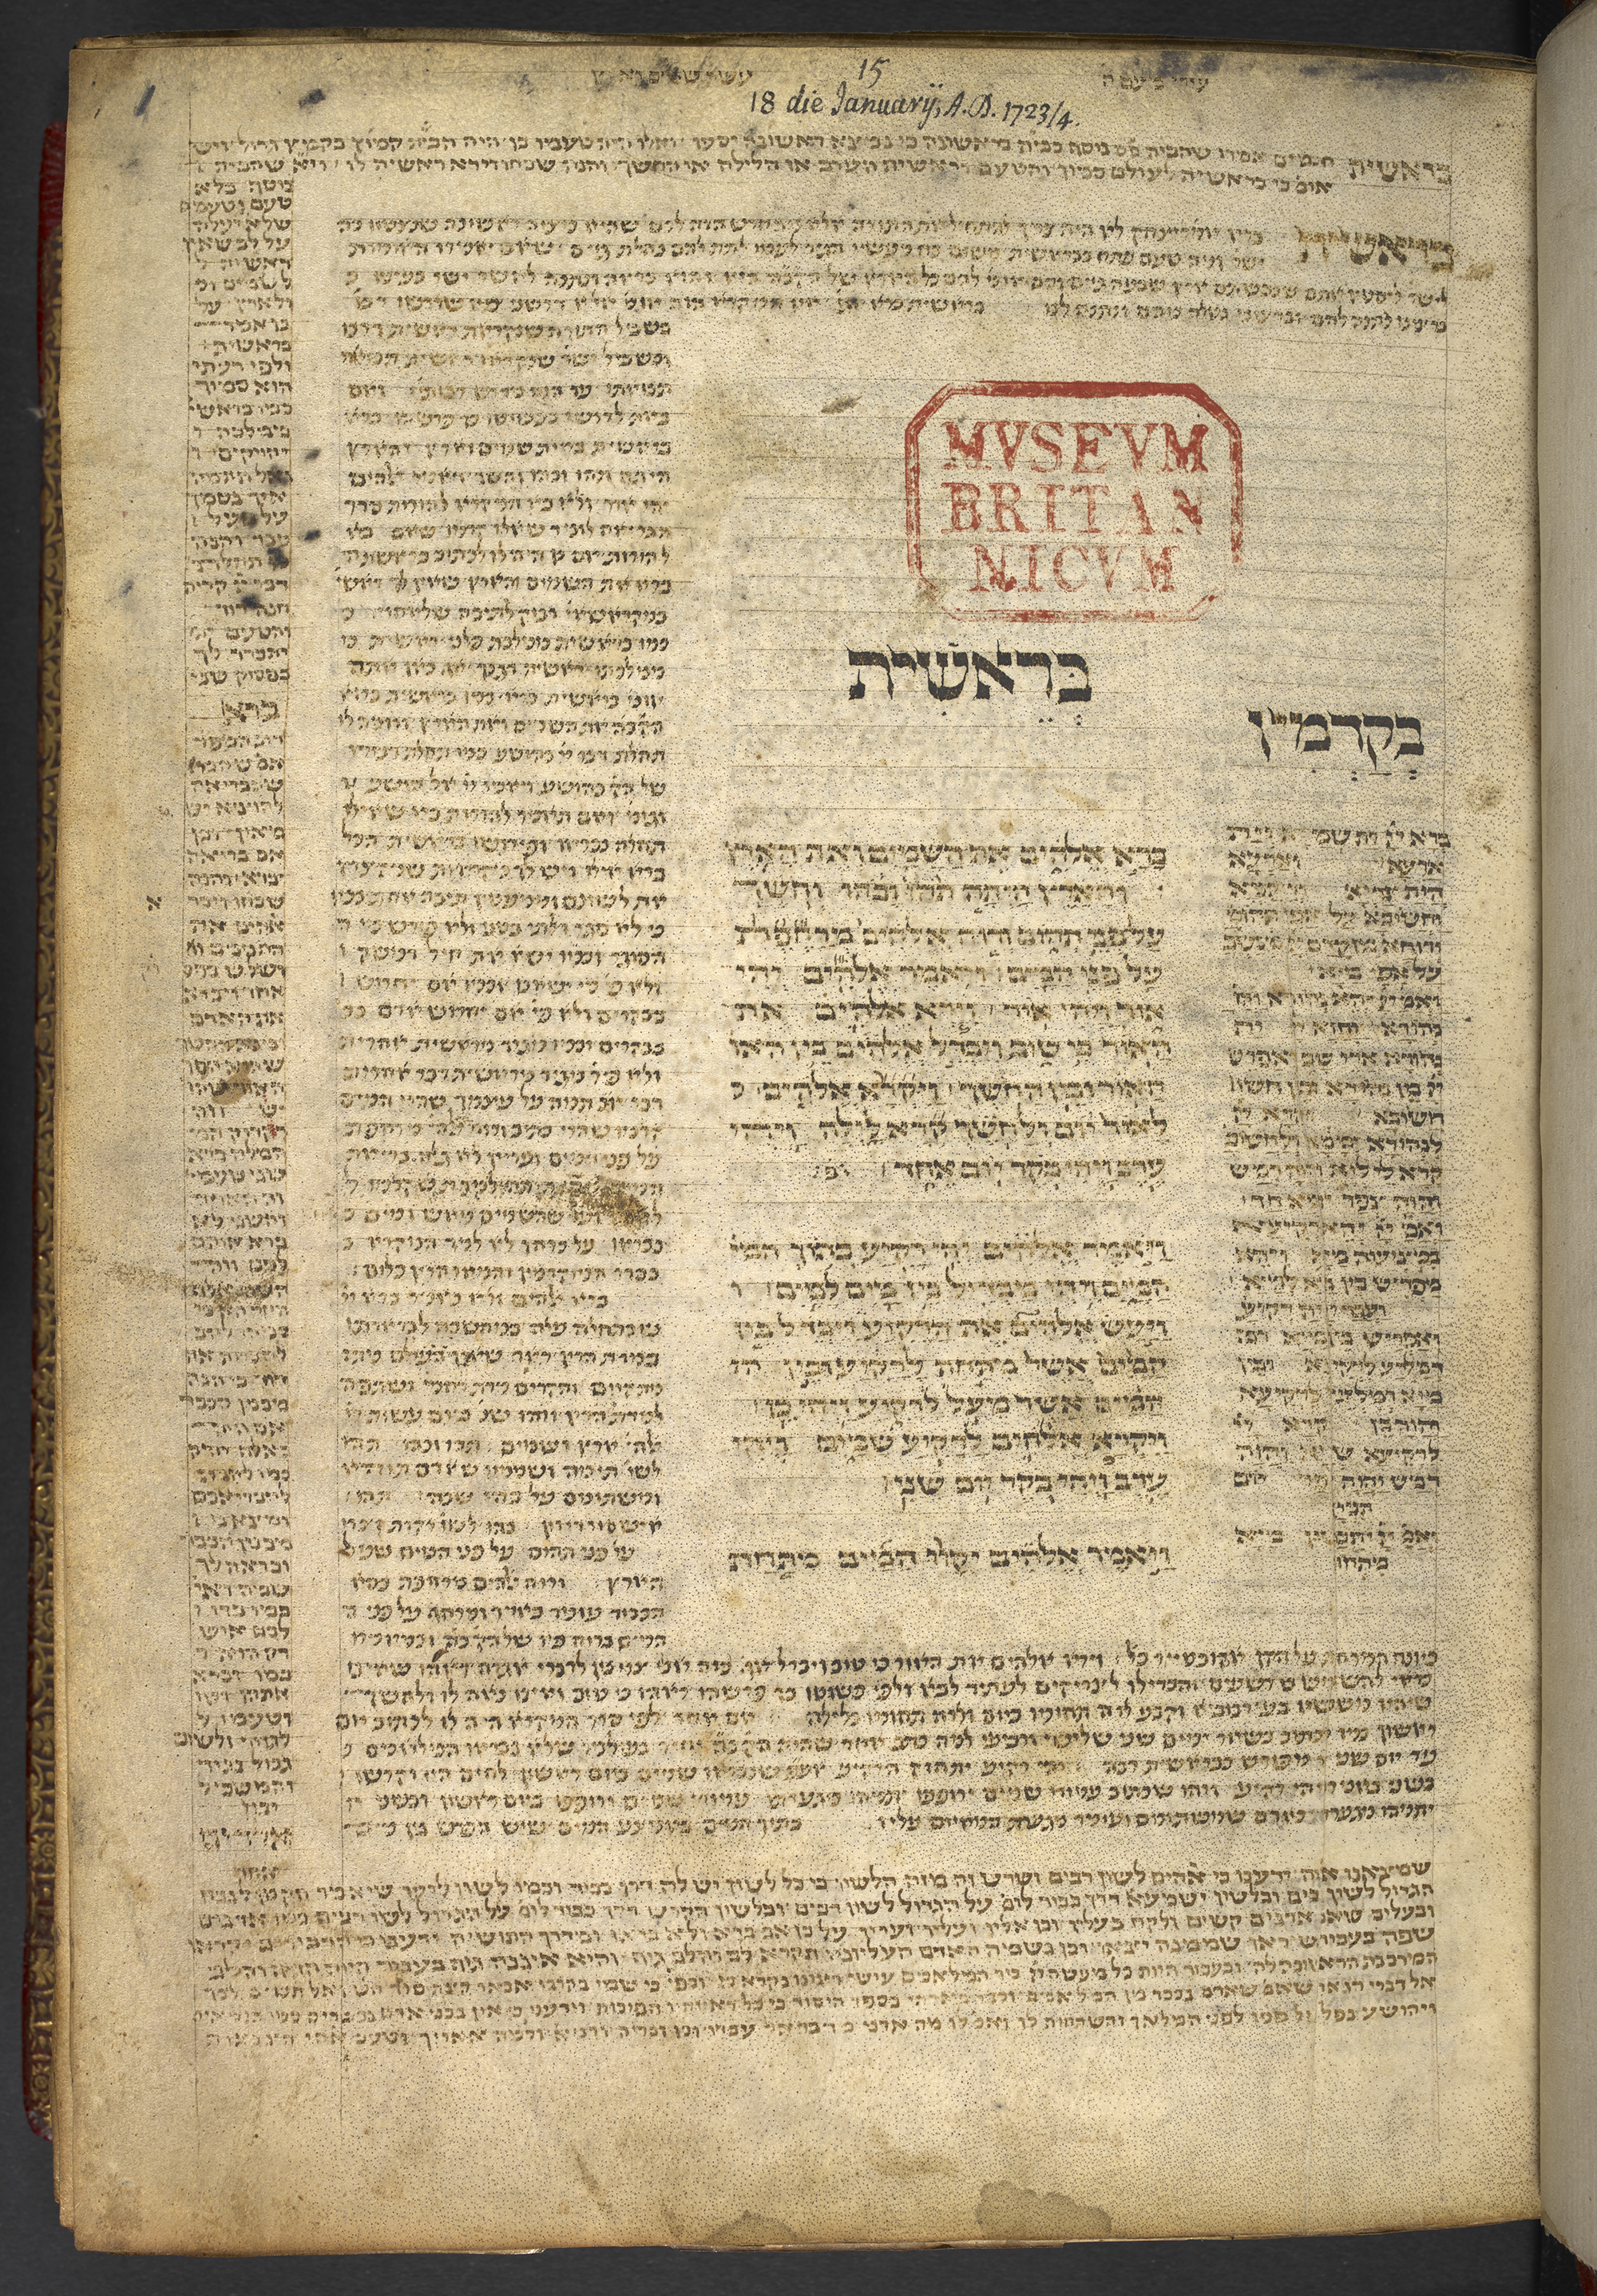 Beginning of Genesis containing, in addition to the typical texts of the Ashkenazi glossed Bible, the commentary by Abraham ibn Ezra copied in the outer margins of the page, Pentateuch, Harley MS 5772, Hebrew Manuscripts Digitisation Project, British Library